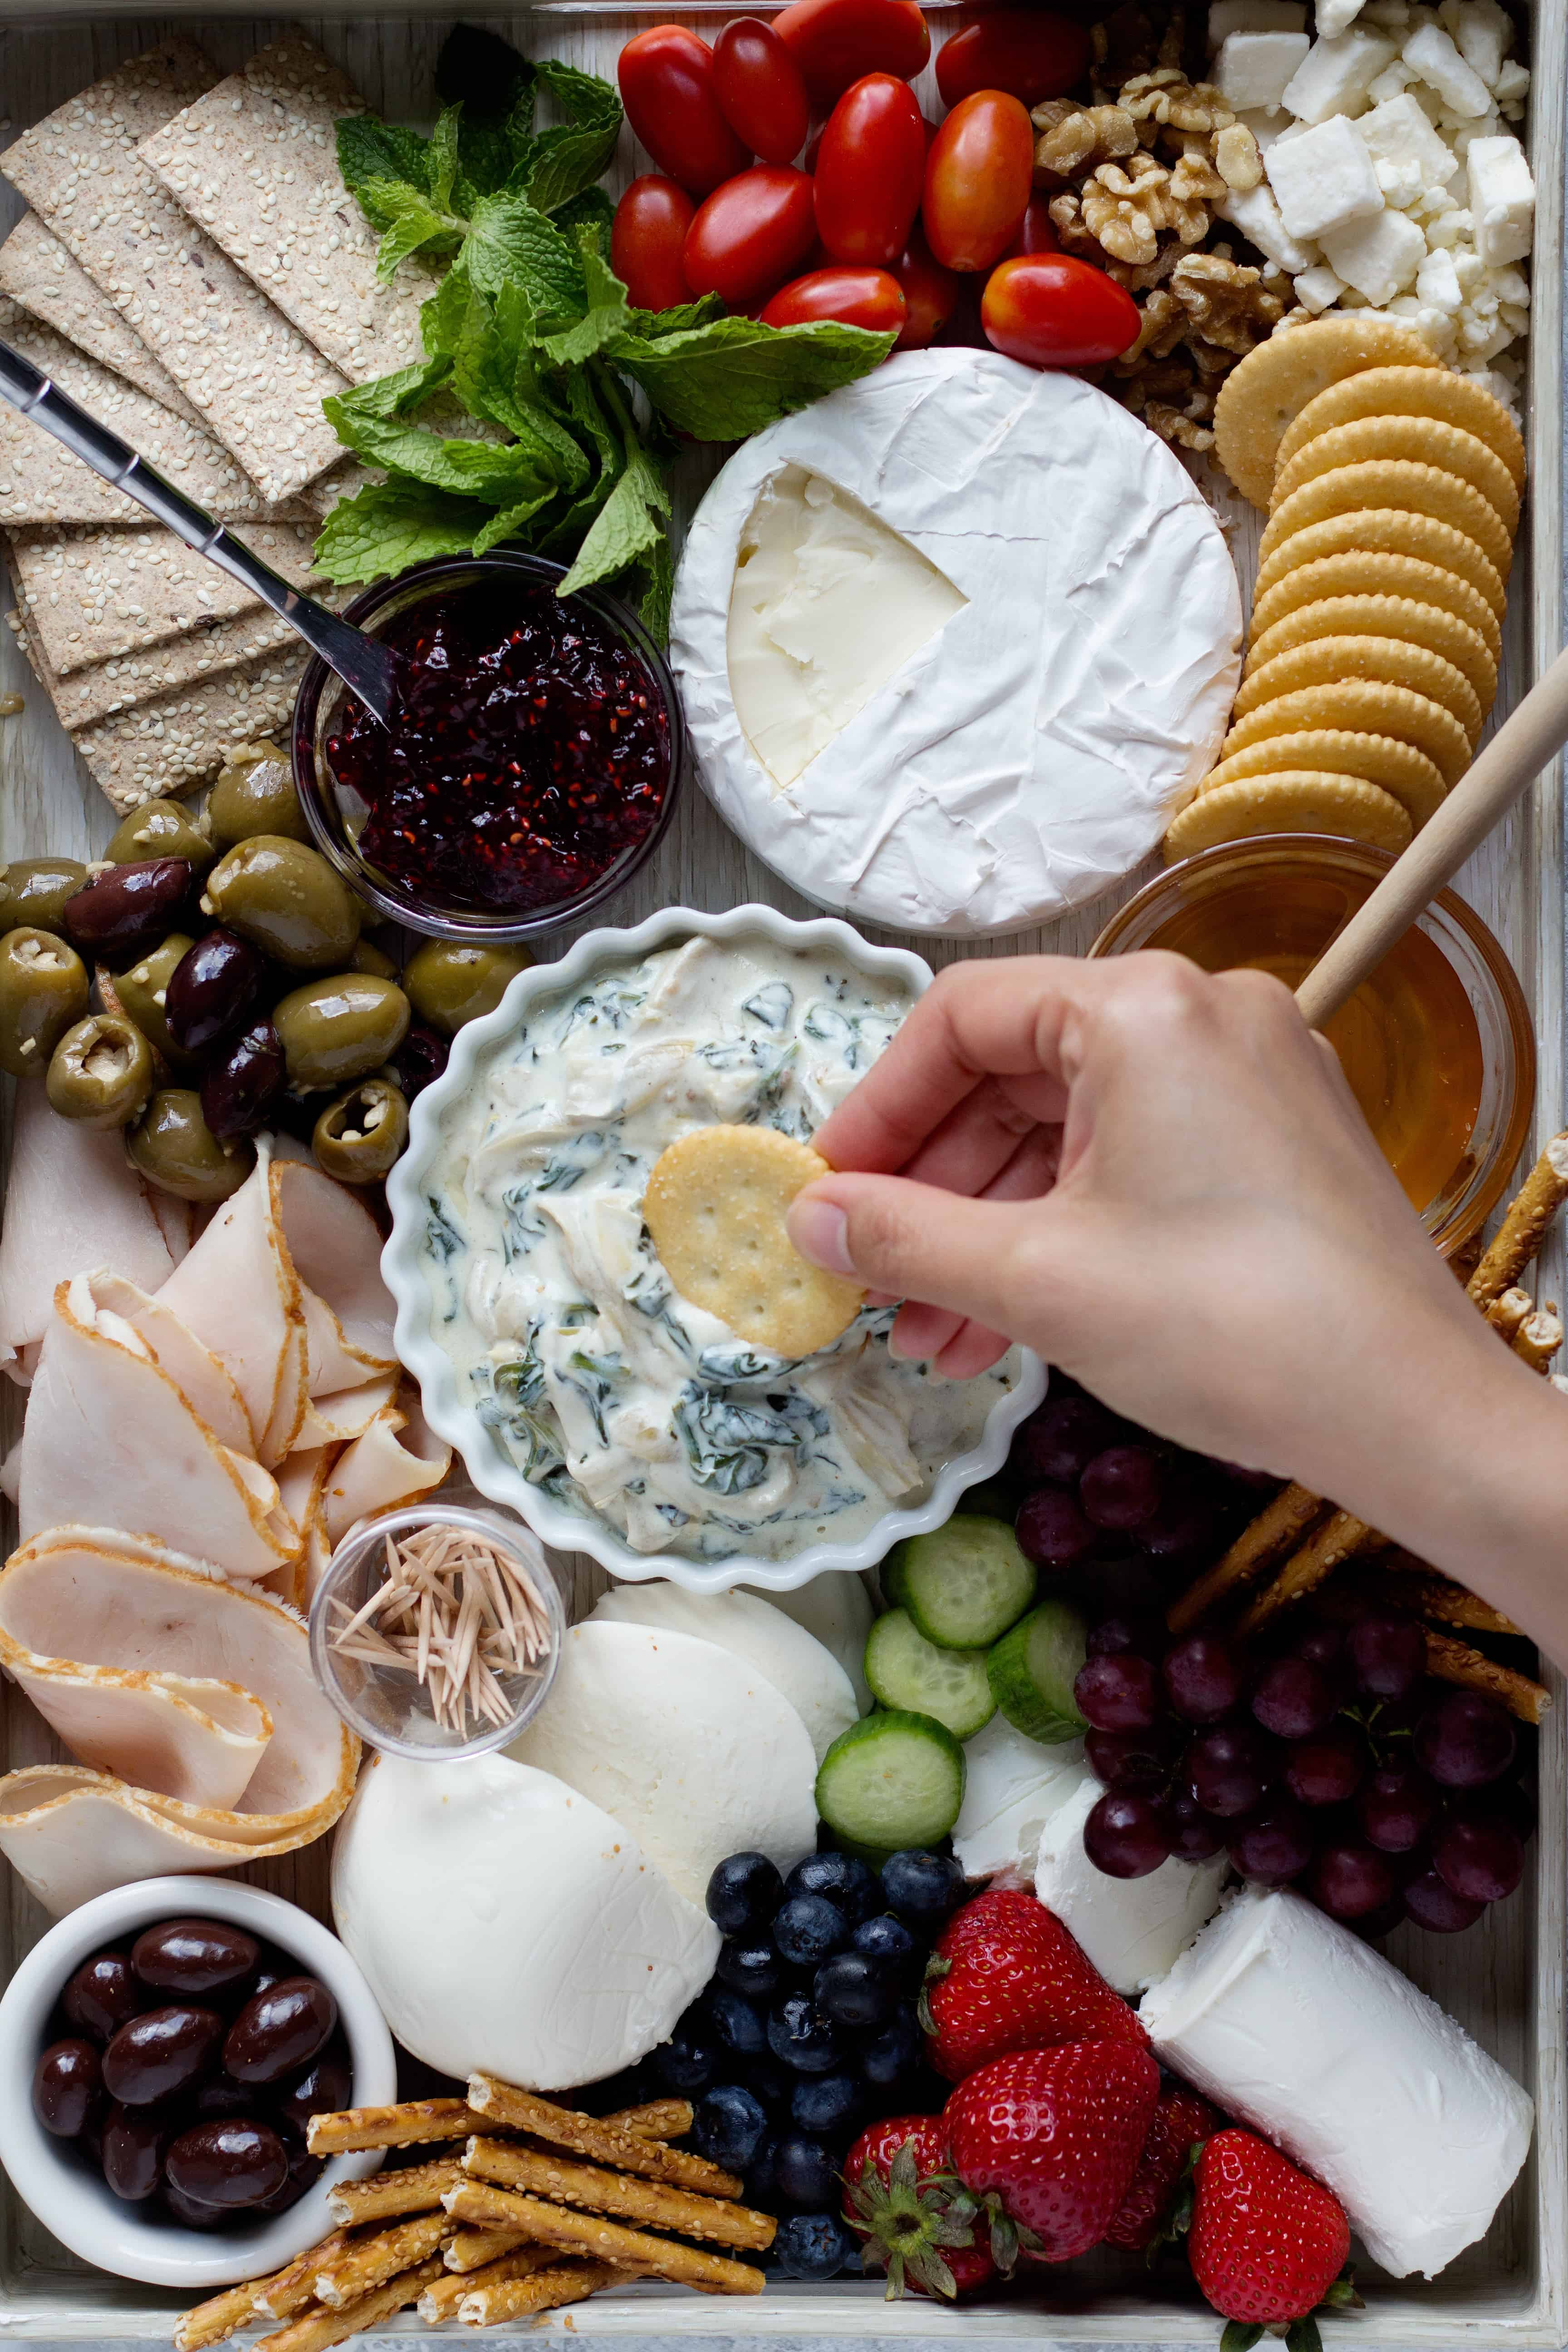 Dip crackers into a spinach artichoke dip with some olives and cheese.